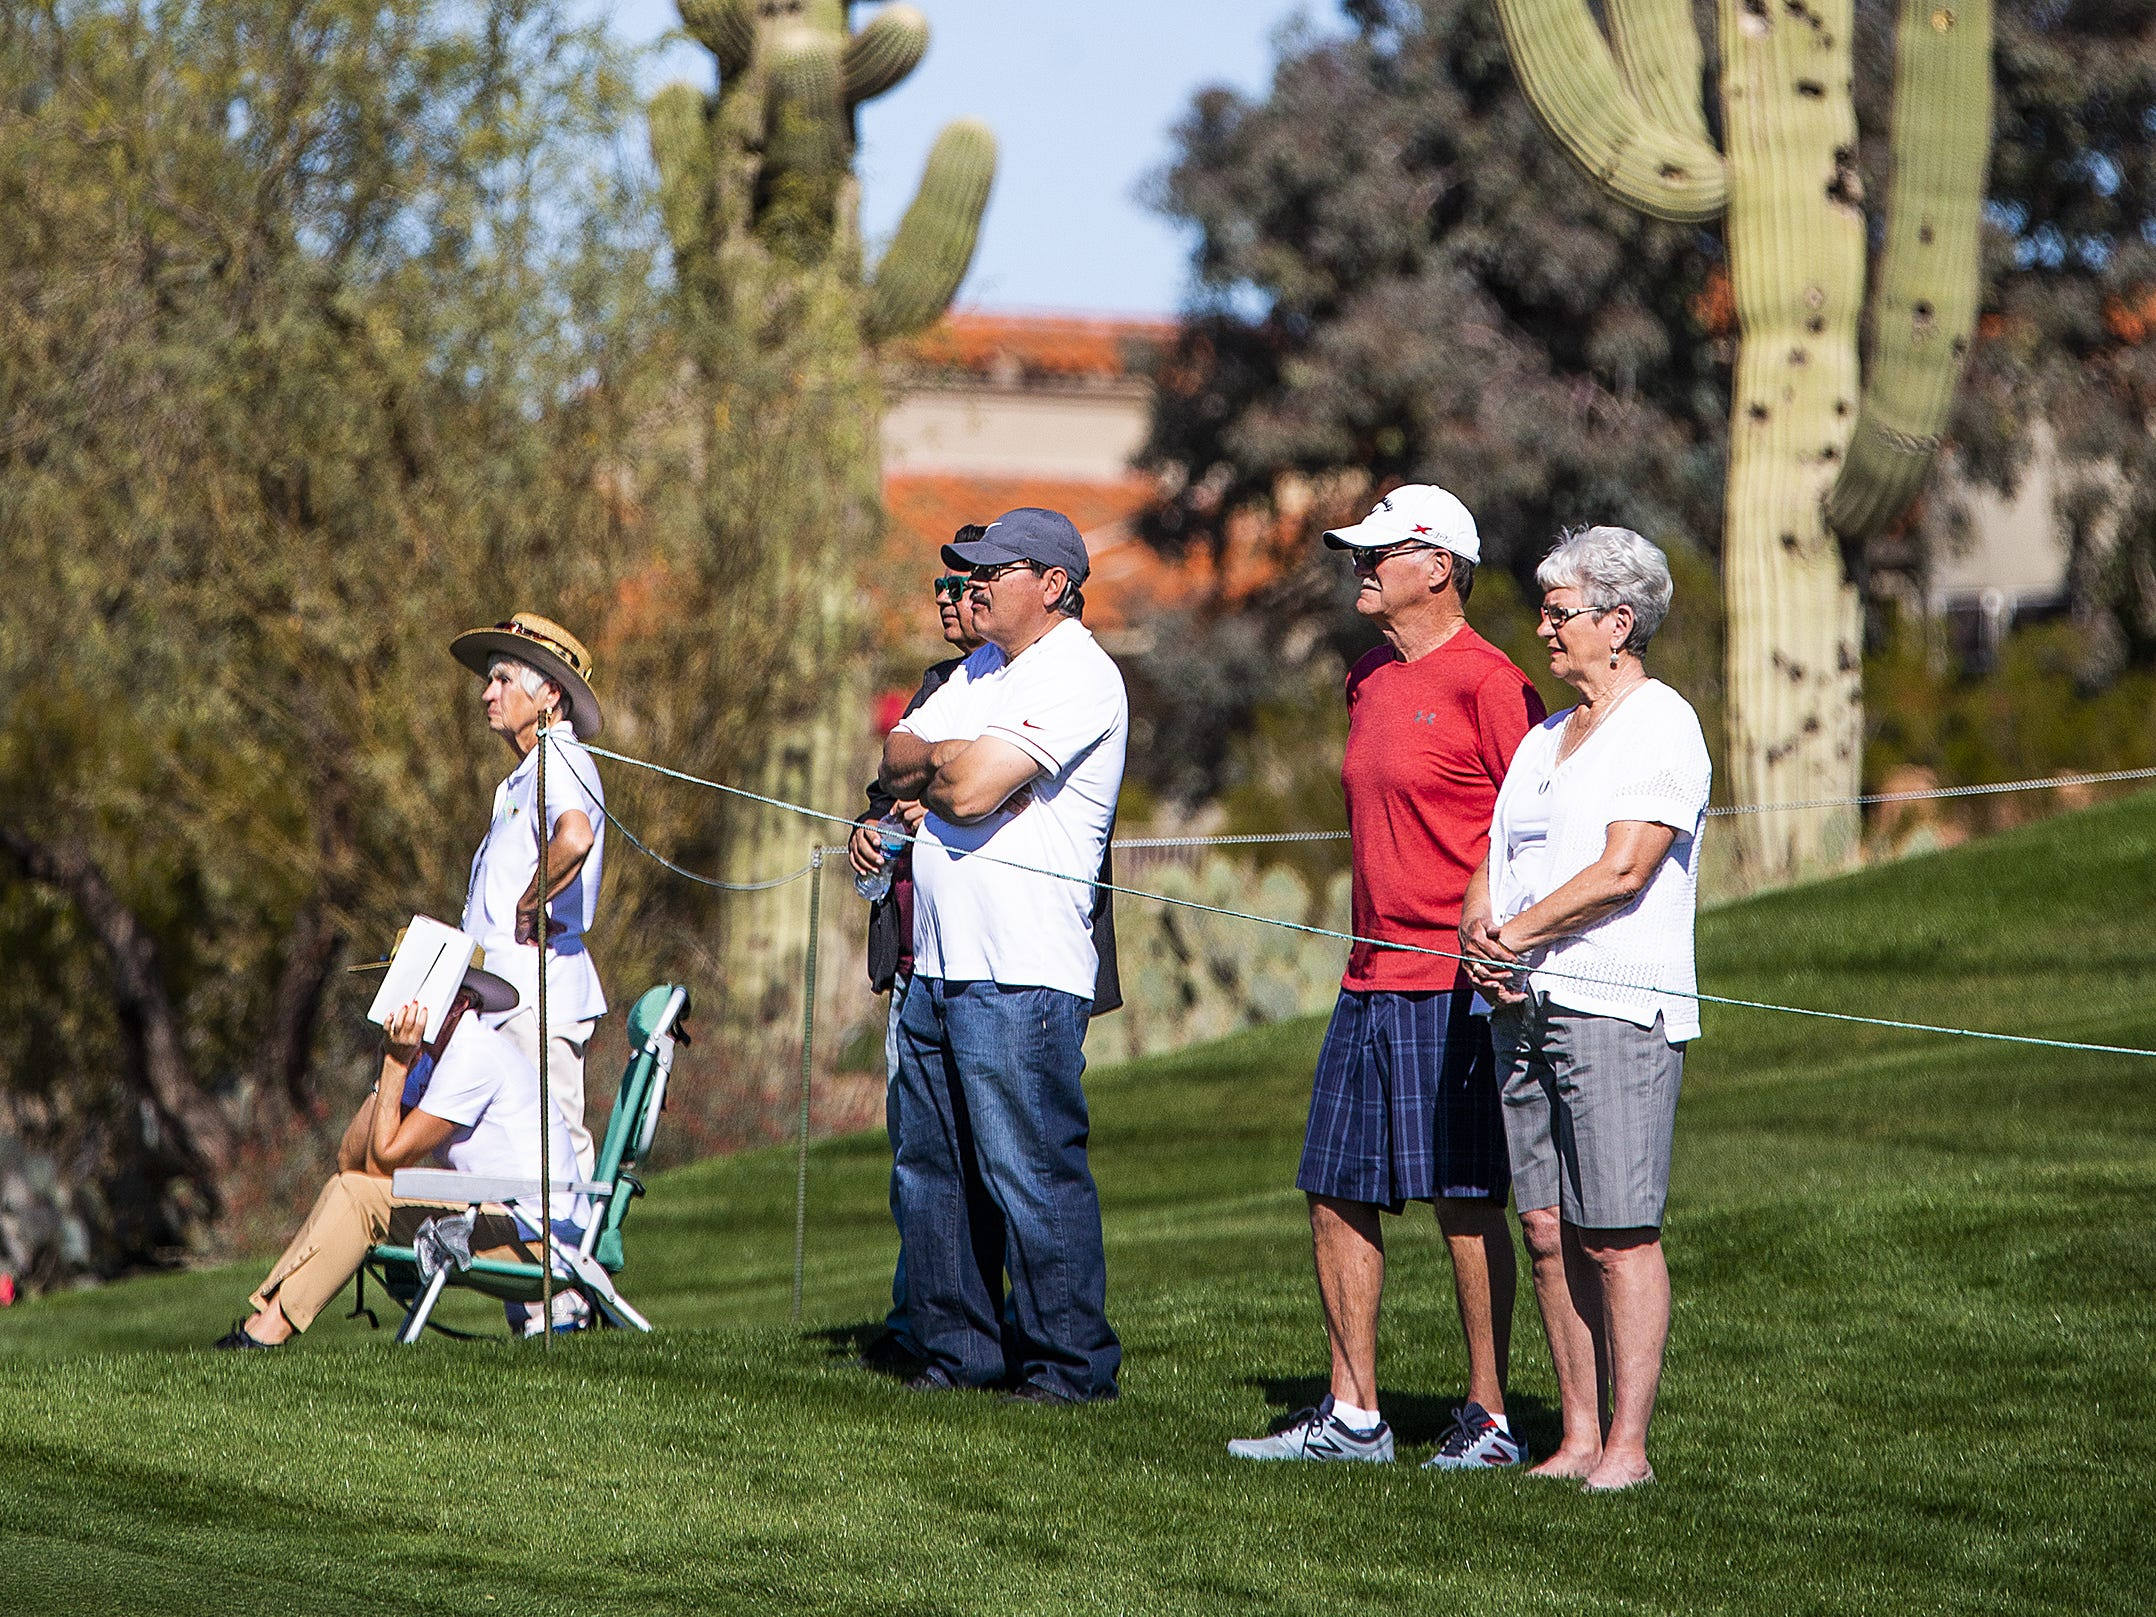 Fans watch golf action on the 2nd hole during the Kadima.Ventures Pro-Am at the Waste Management Phoenix Open at the TPC Scottsdale, Monday, January 28, 2019.